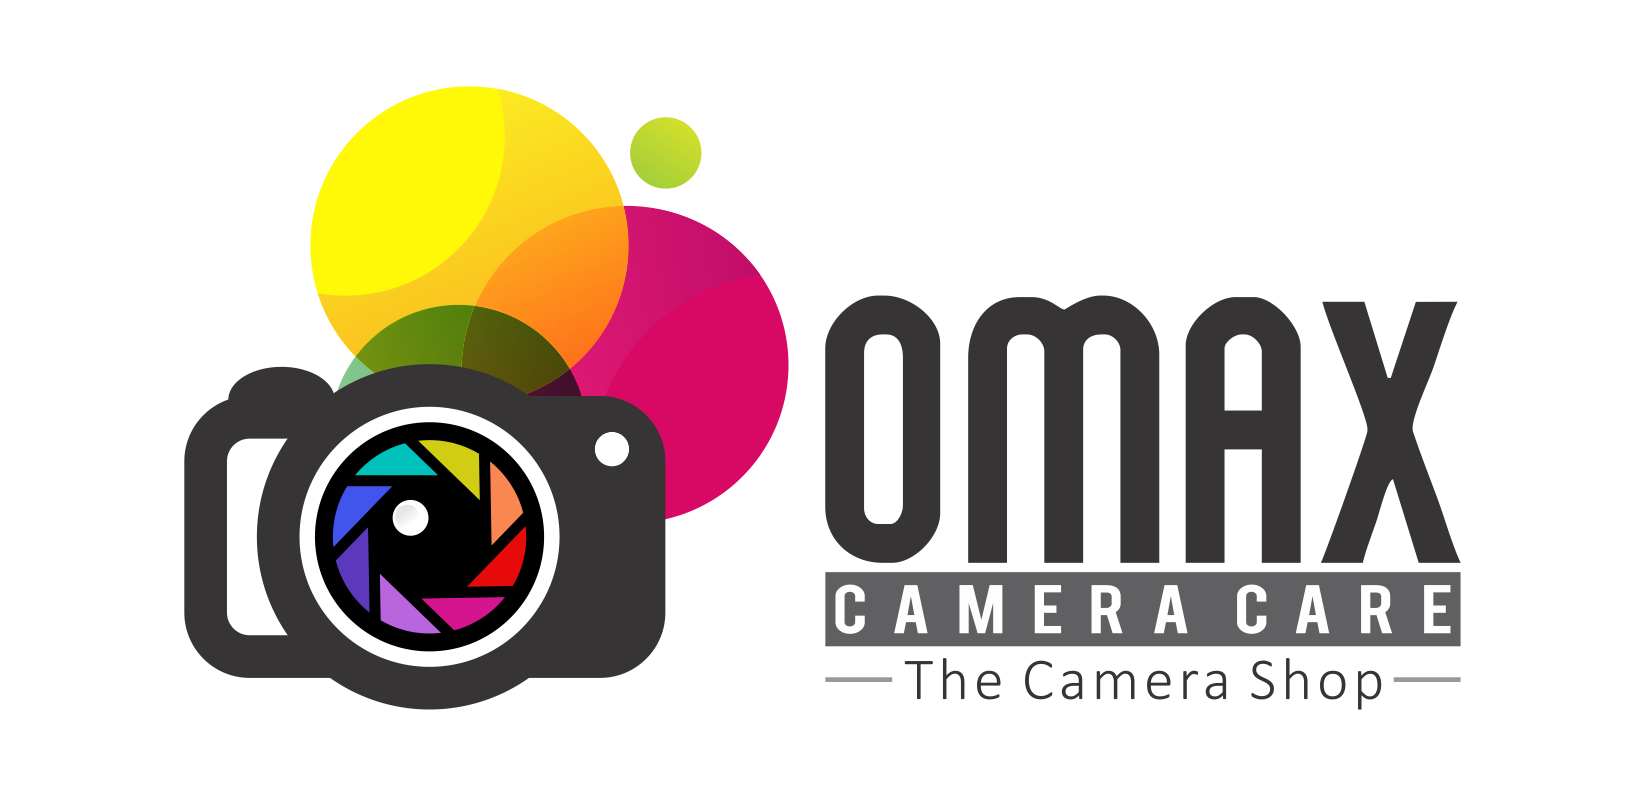 Photography clipart cmera. Camera logo png hd